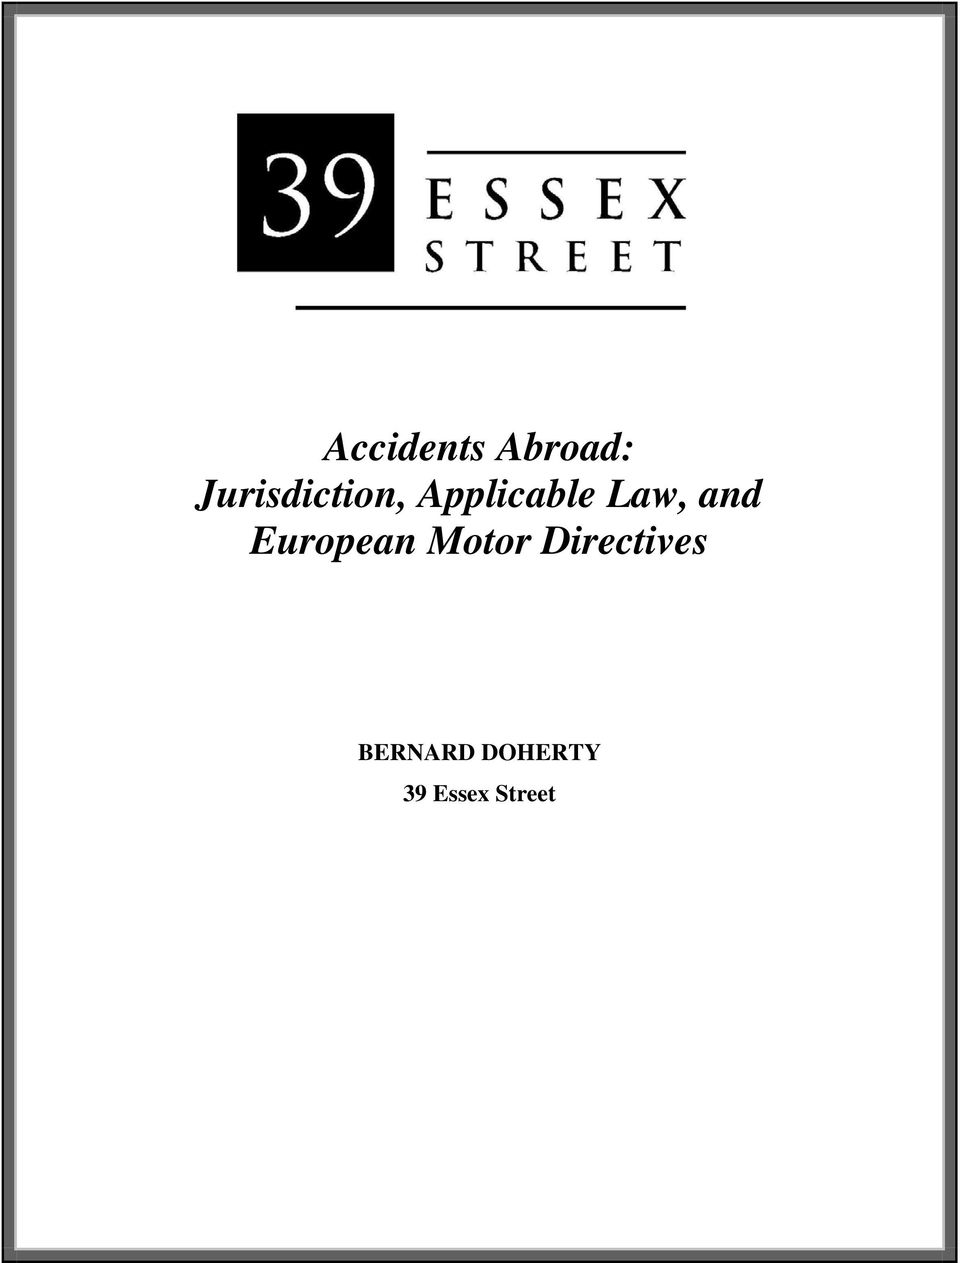 Law, and European Motor